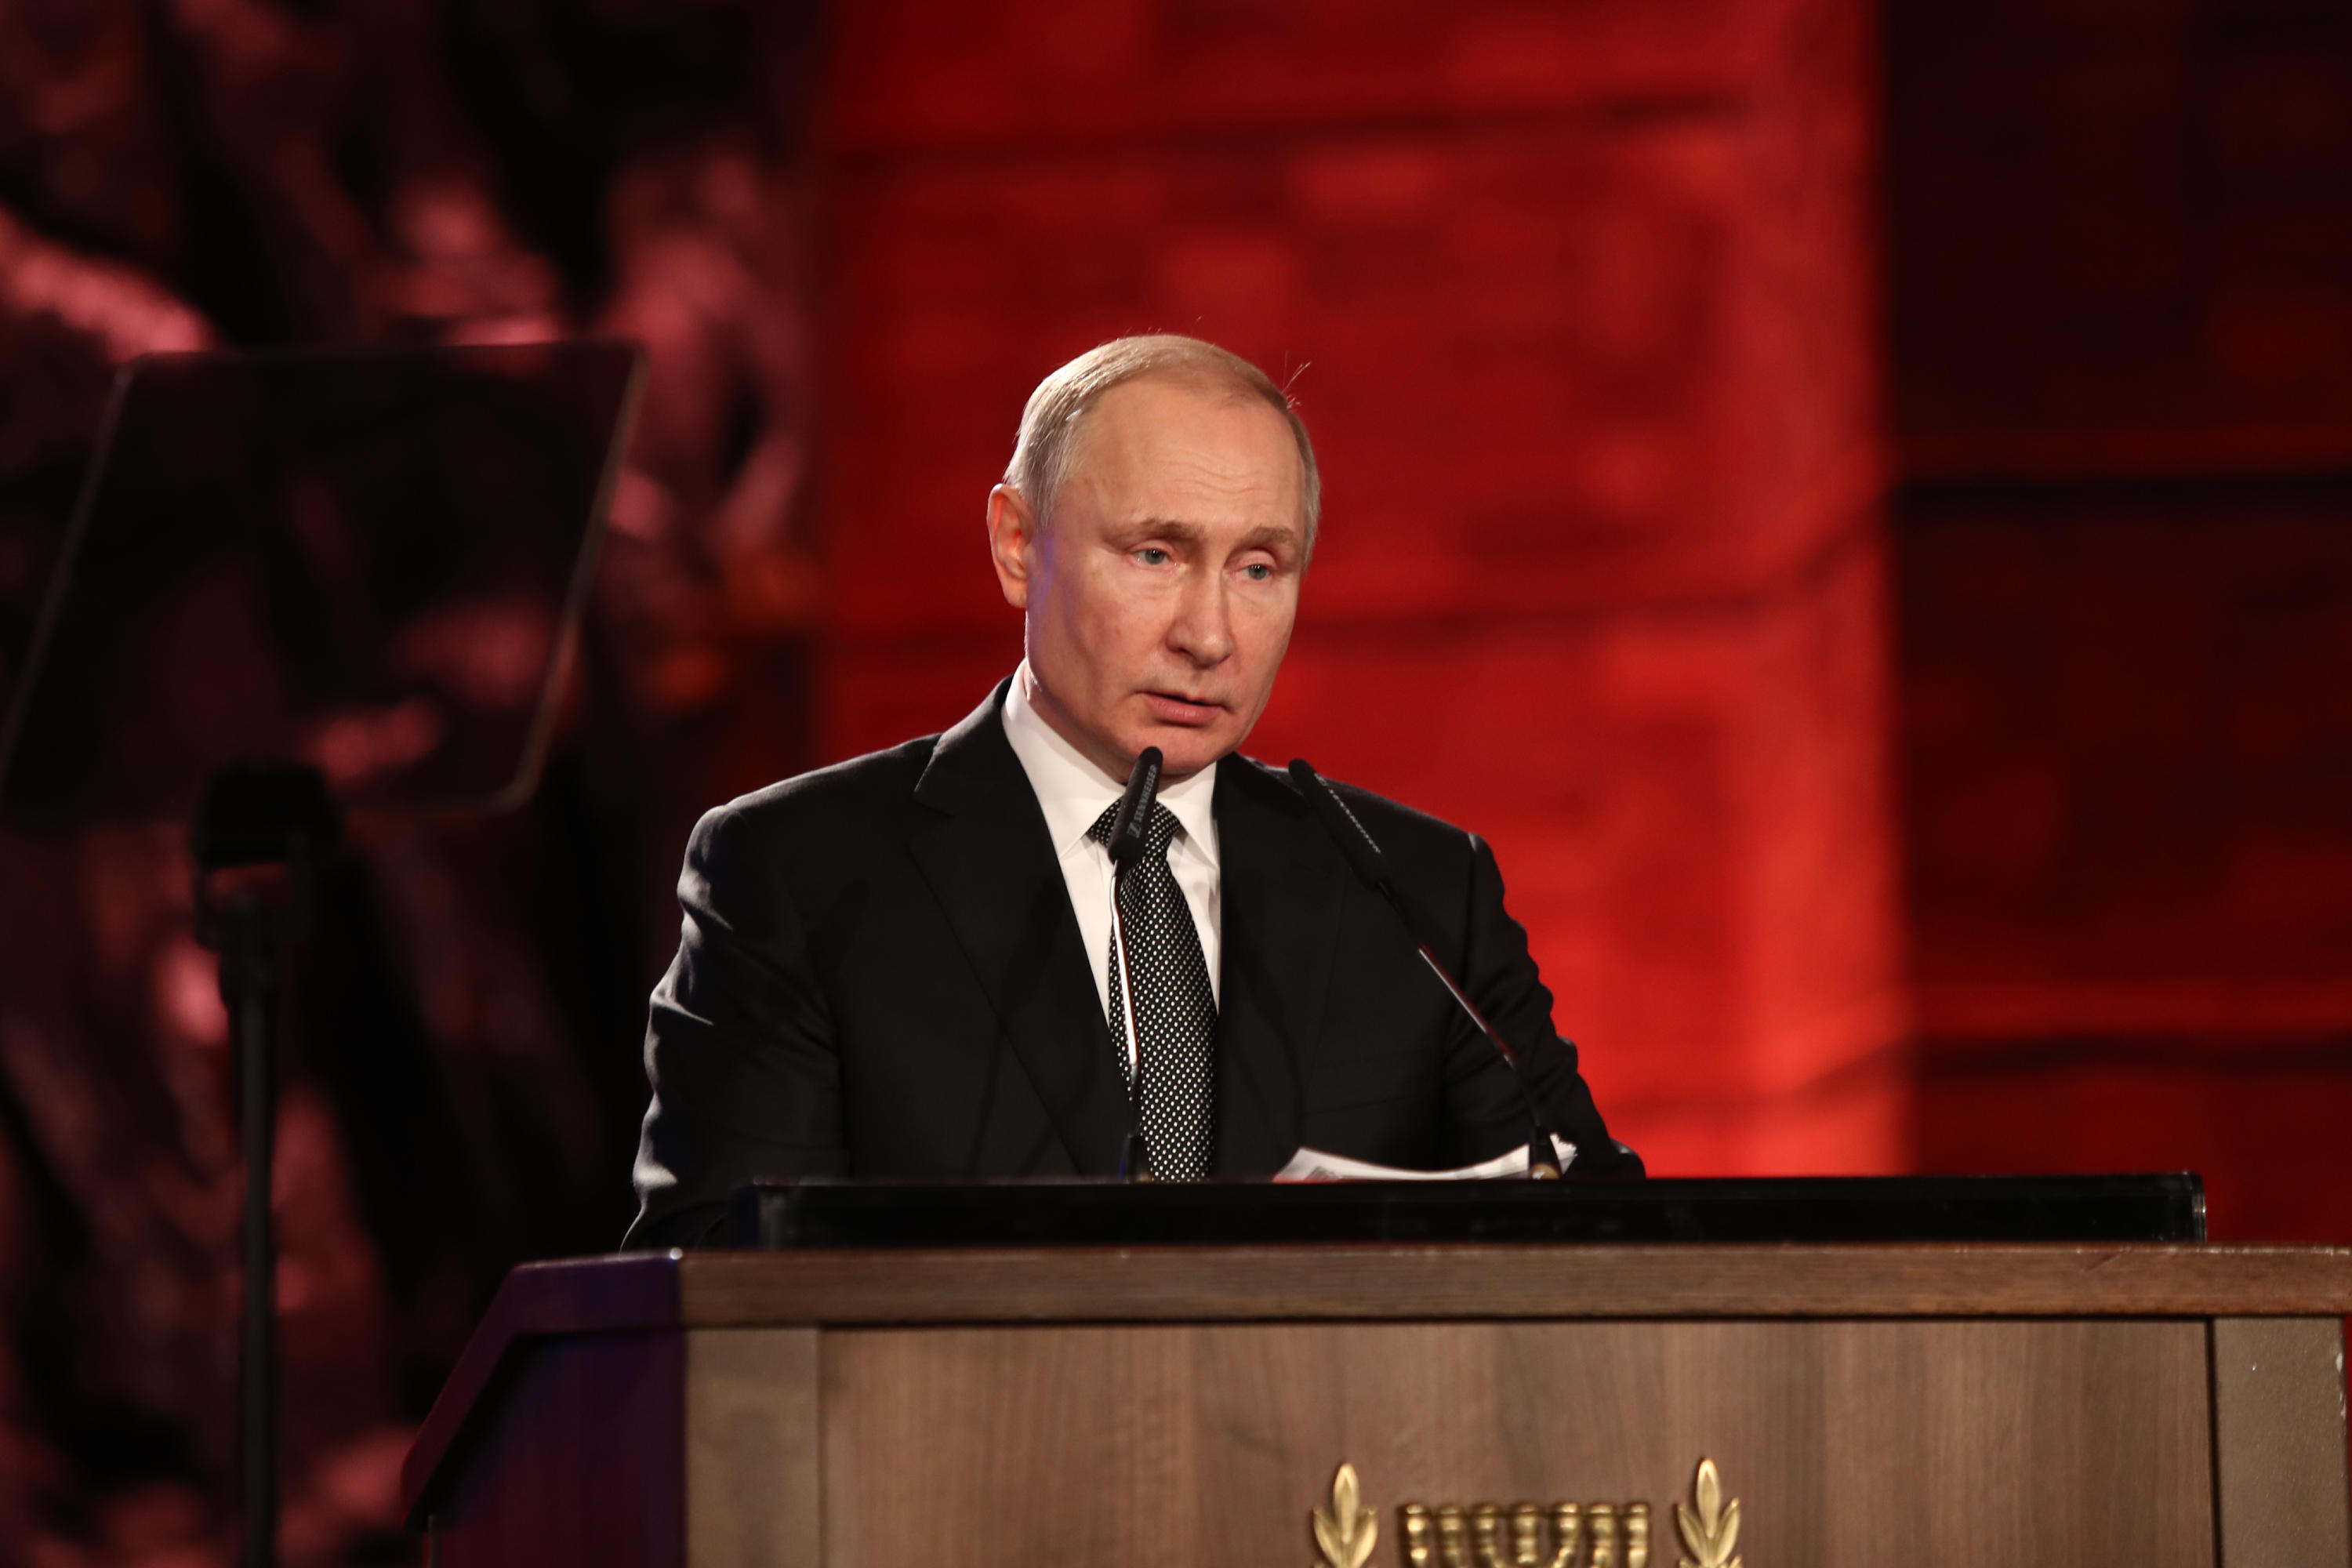 Russian President Vladimir Putin spoke to the distinguished group of leaders at the World Holocaust Forum